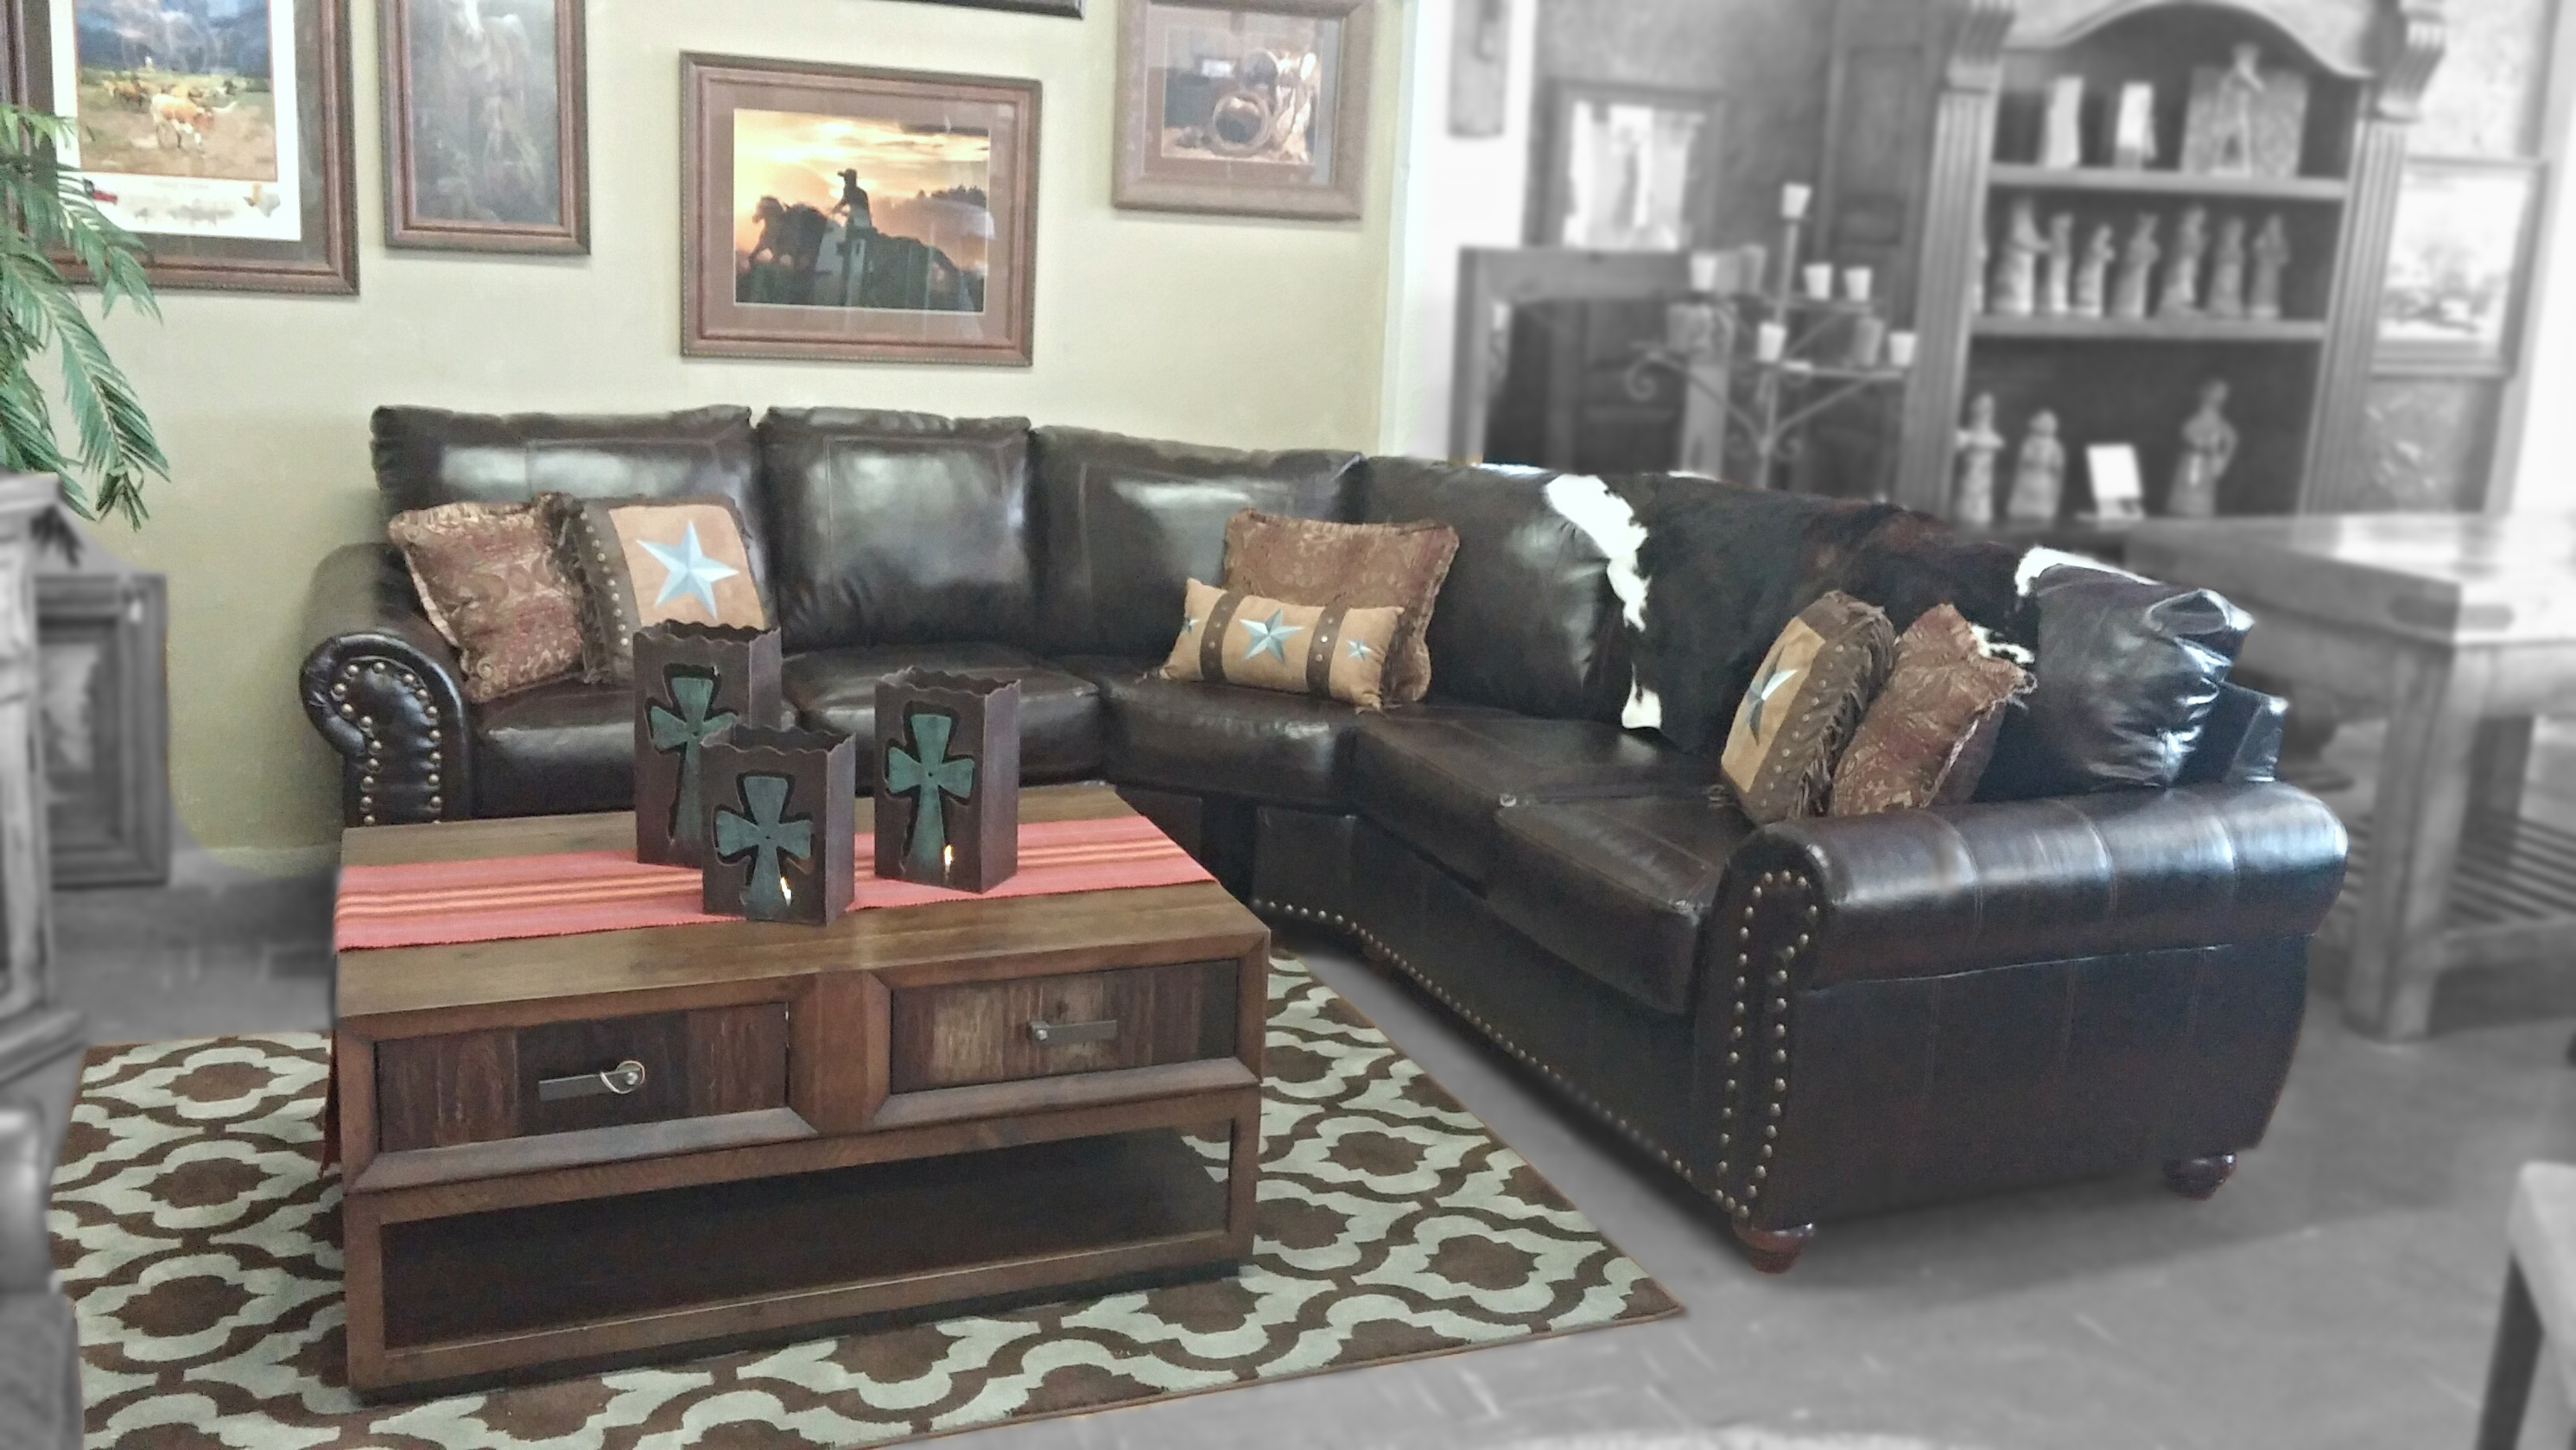 Excellent front room furnishings for living room ideas with front room furnishings outlet